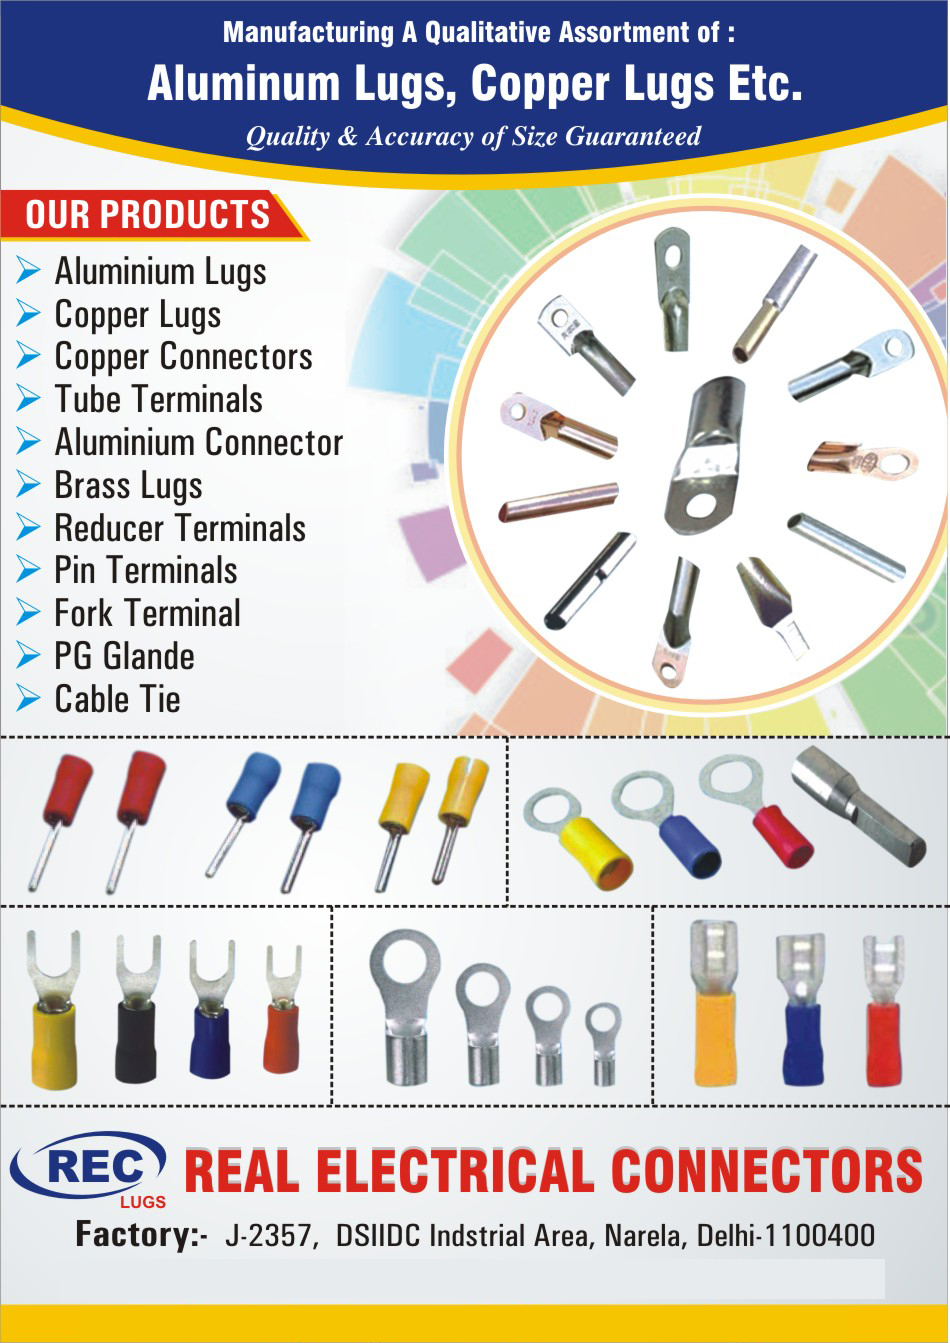 Aluminium Lugs, Copper Lugs, Copper Connector, Tube Terminal, Aluminium Connector, Brass Lugs, Reducer Terminal, Pin Terminal, Fork Terminal, PG Gland, Cable Tie